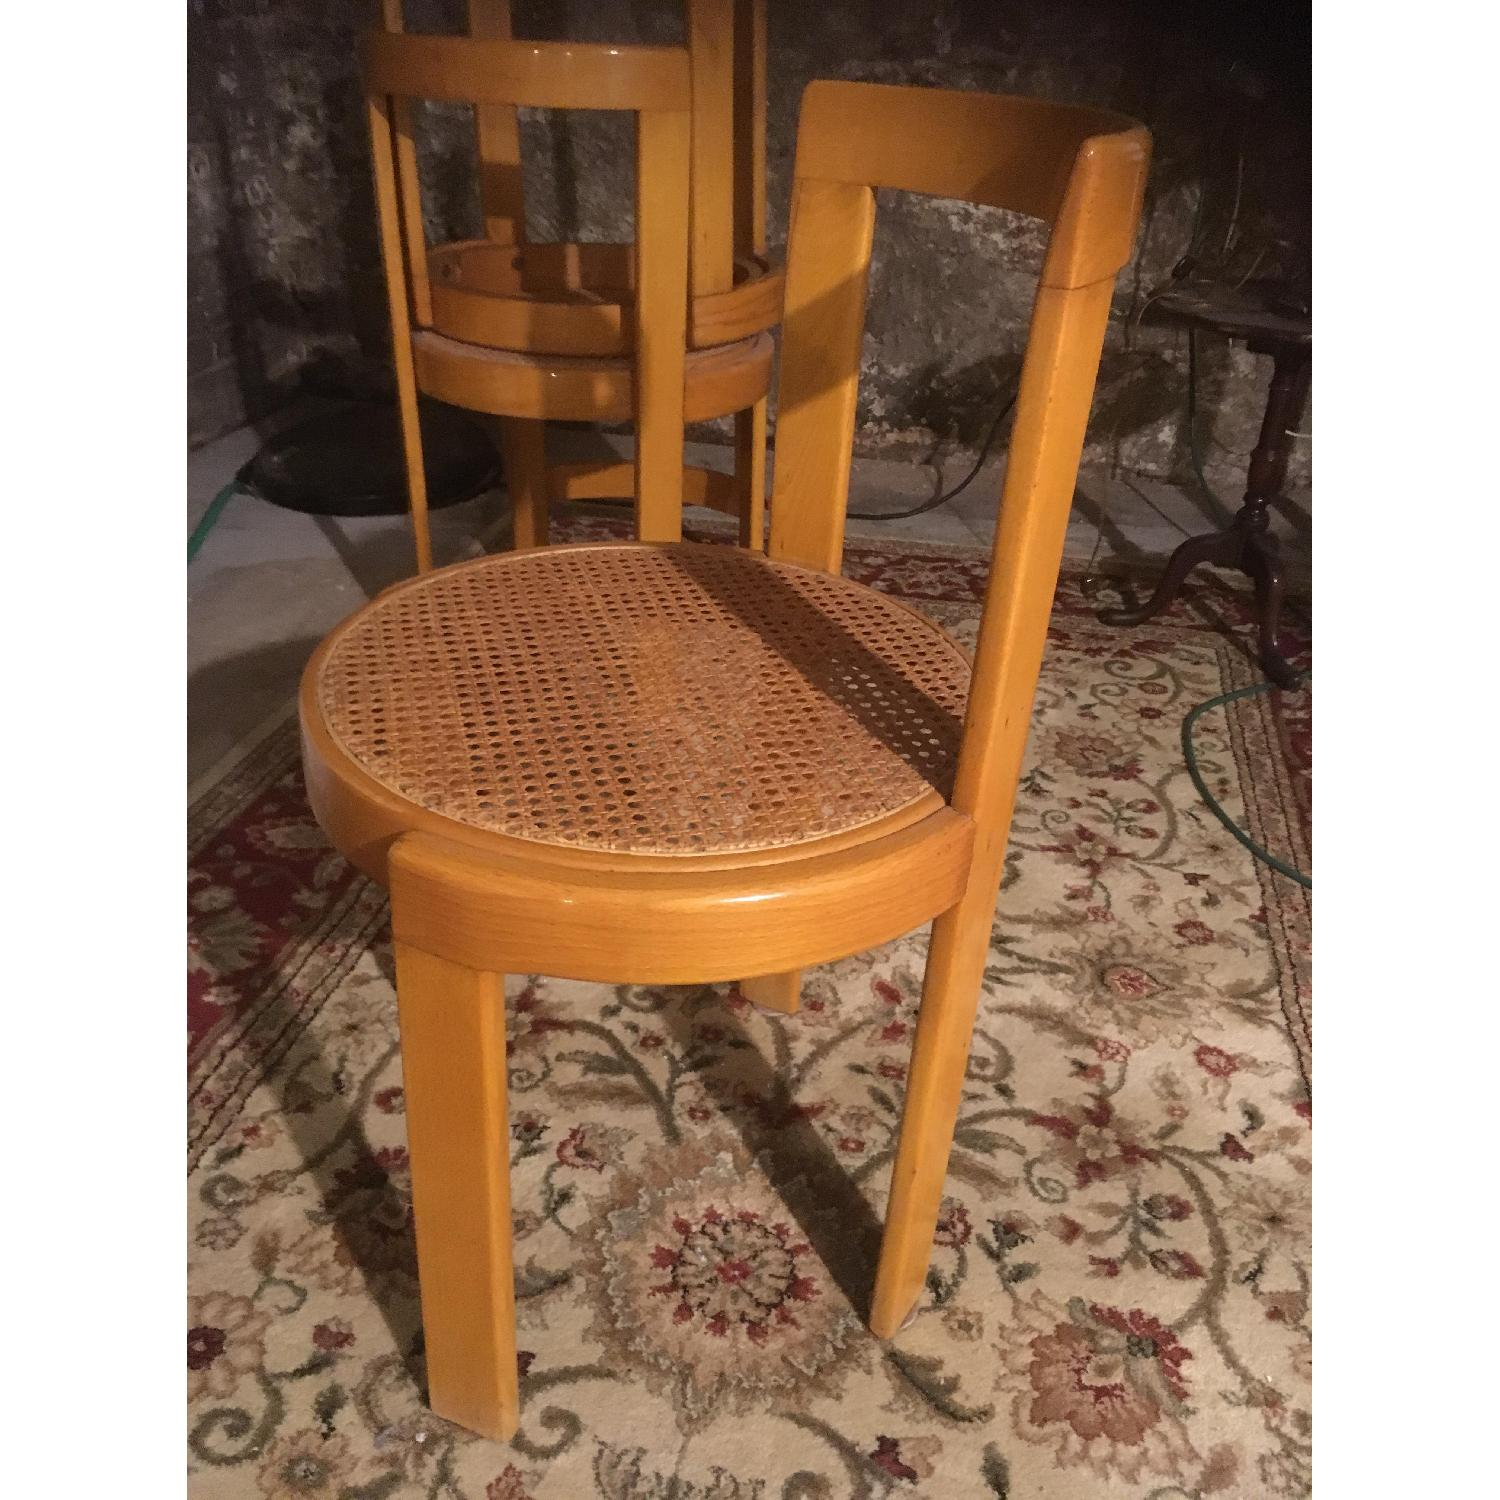 Thonet Italian Yellow Bent Wood Cane Seat Dining Chairs - image-1